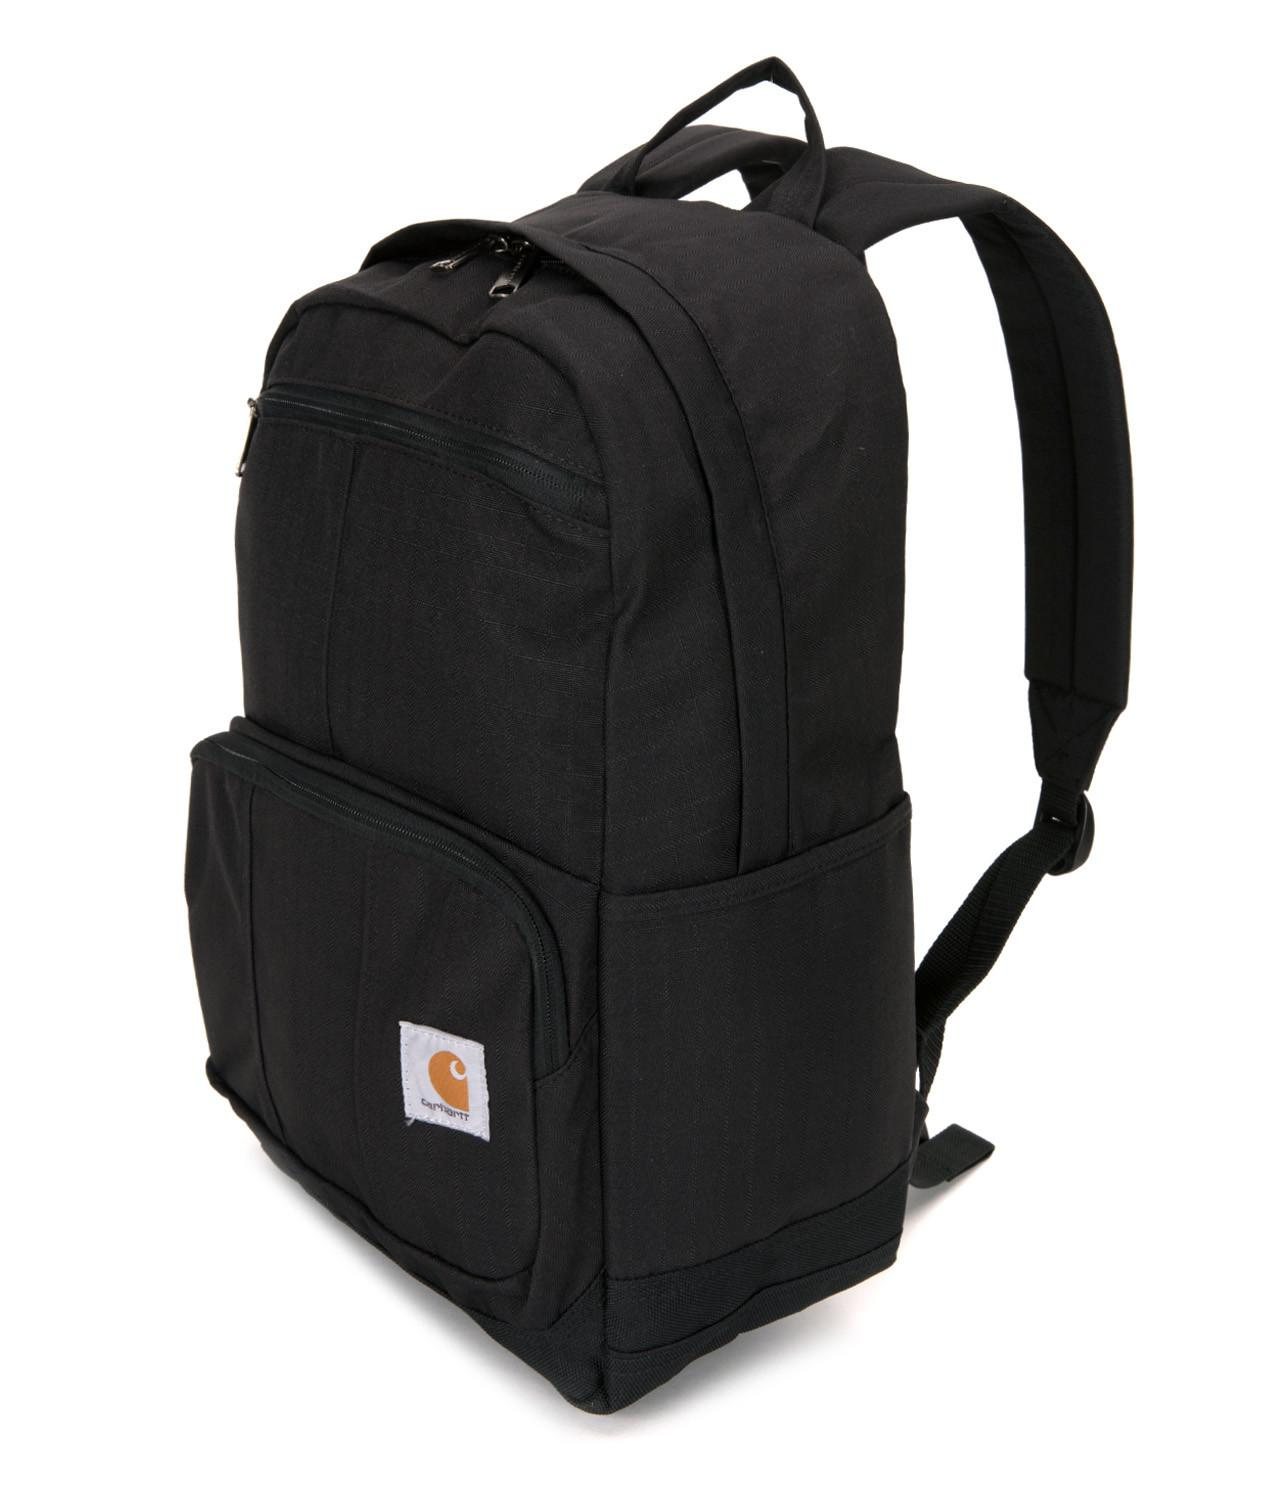 Carhartt D89 Backpack-water Repellent Backpack in Black for Men - Lyst